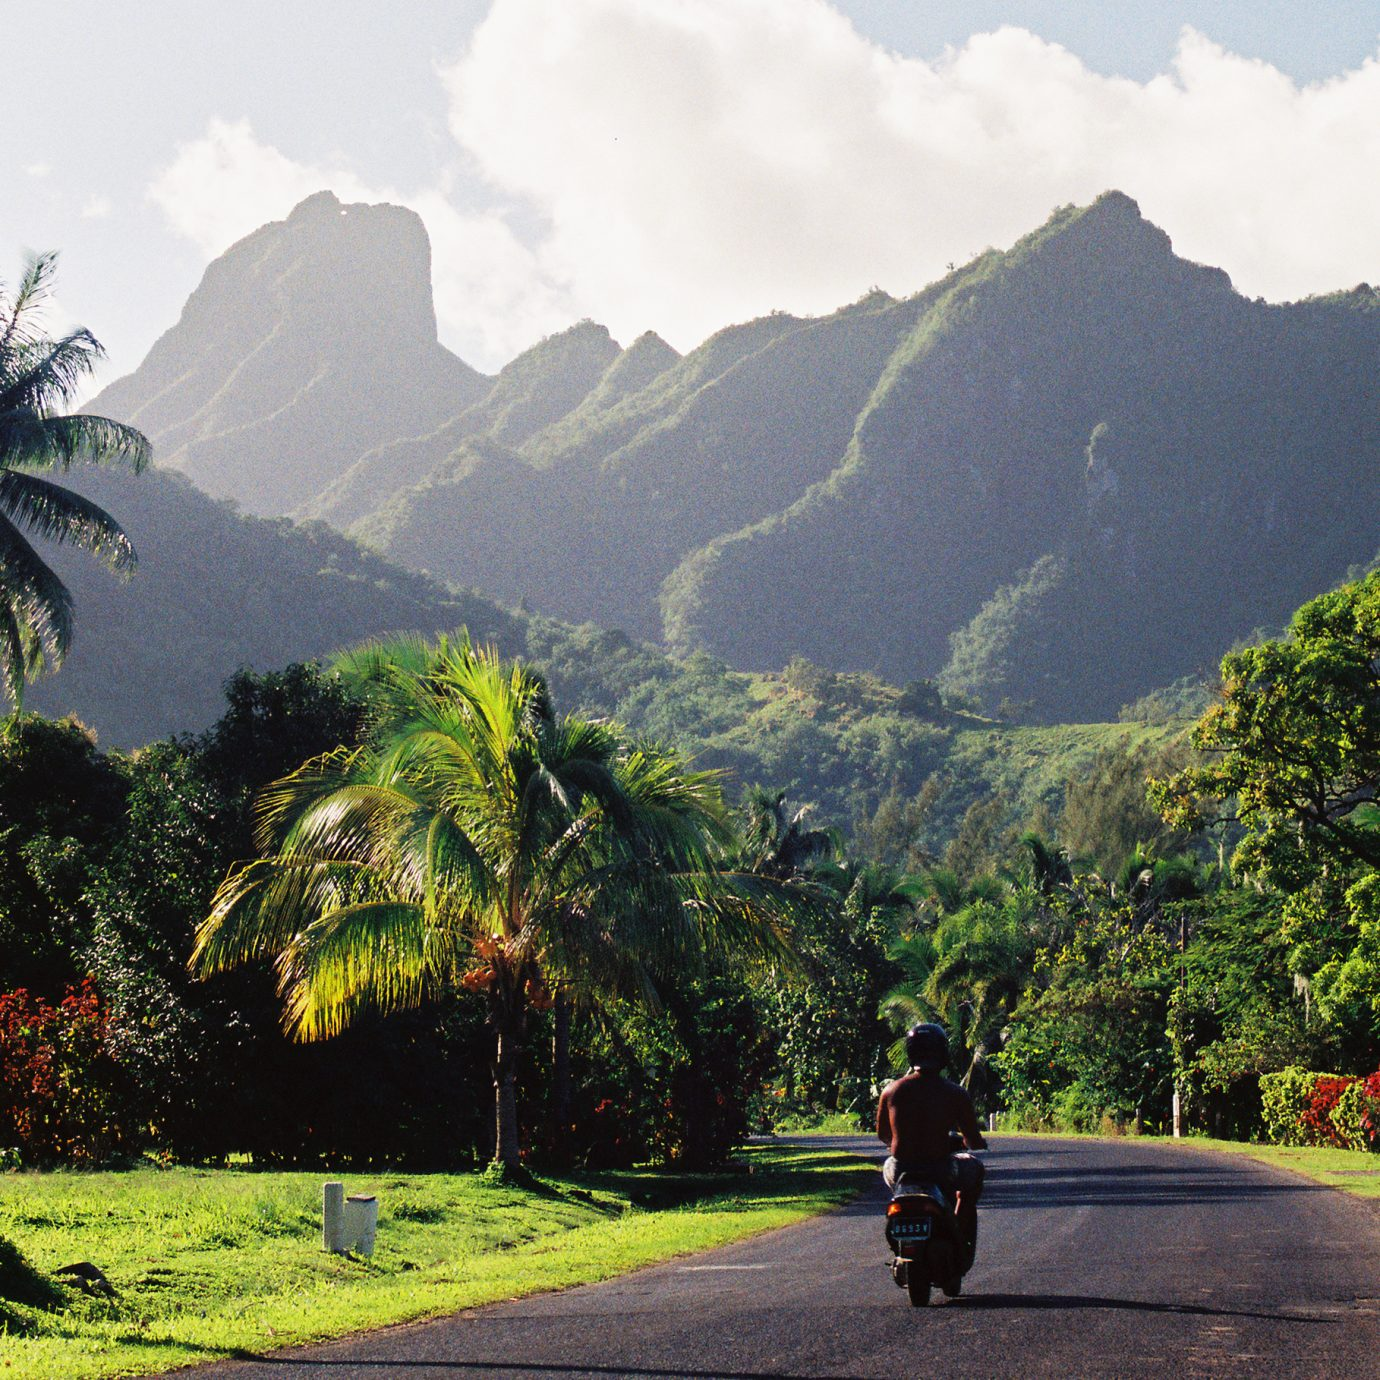 A motorcycle rider rides down a quiet polynesian road on a sunny day